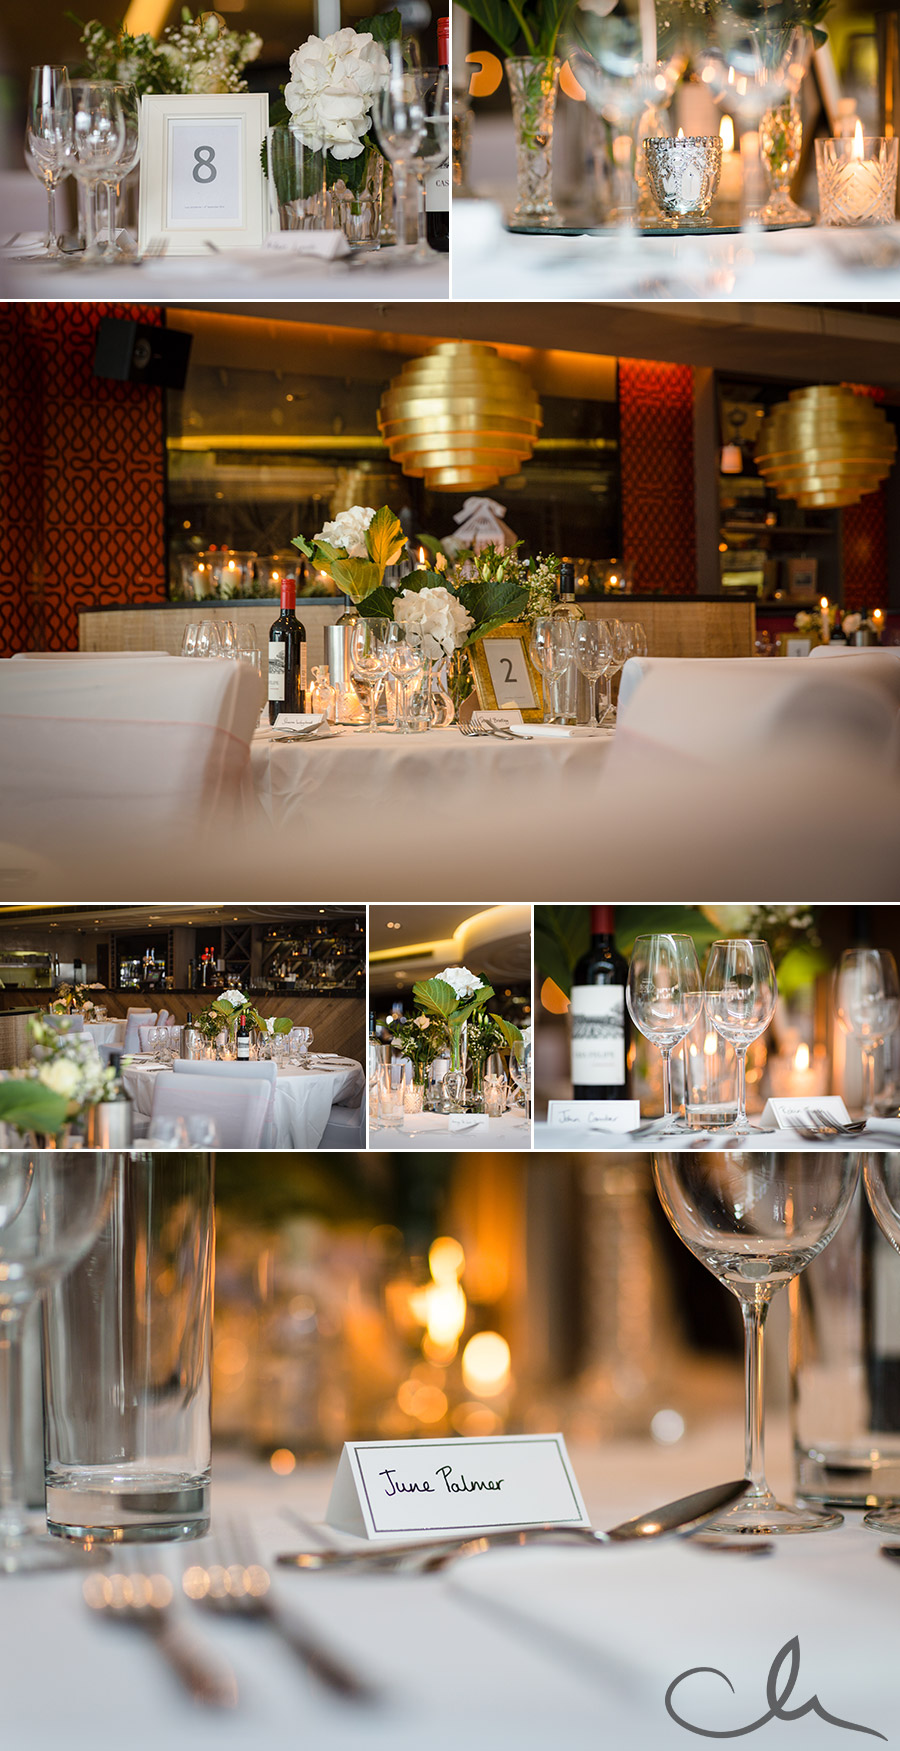 wedding-reception-decoration-ideas-at-Corney-&-Barrow-London-Wedding-venue